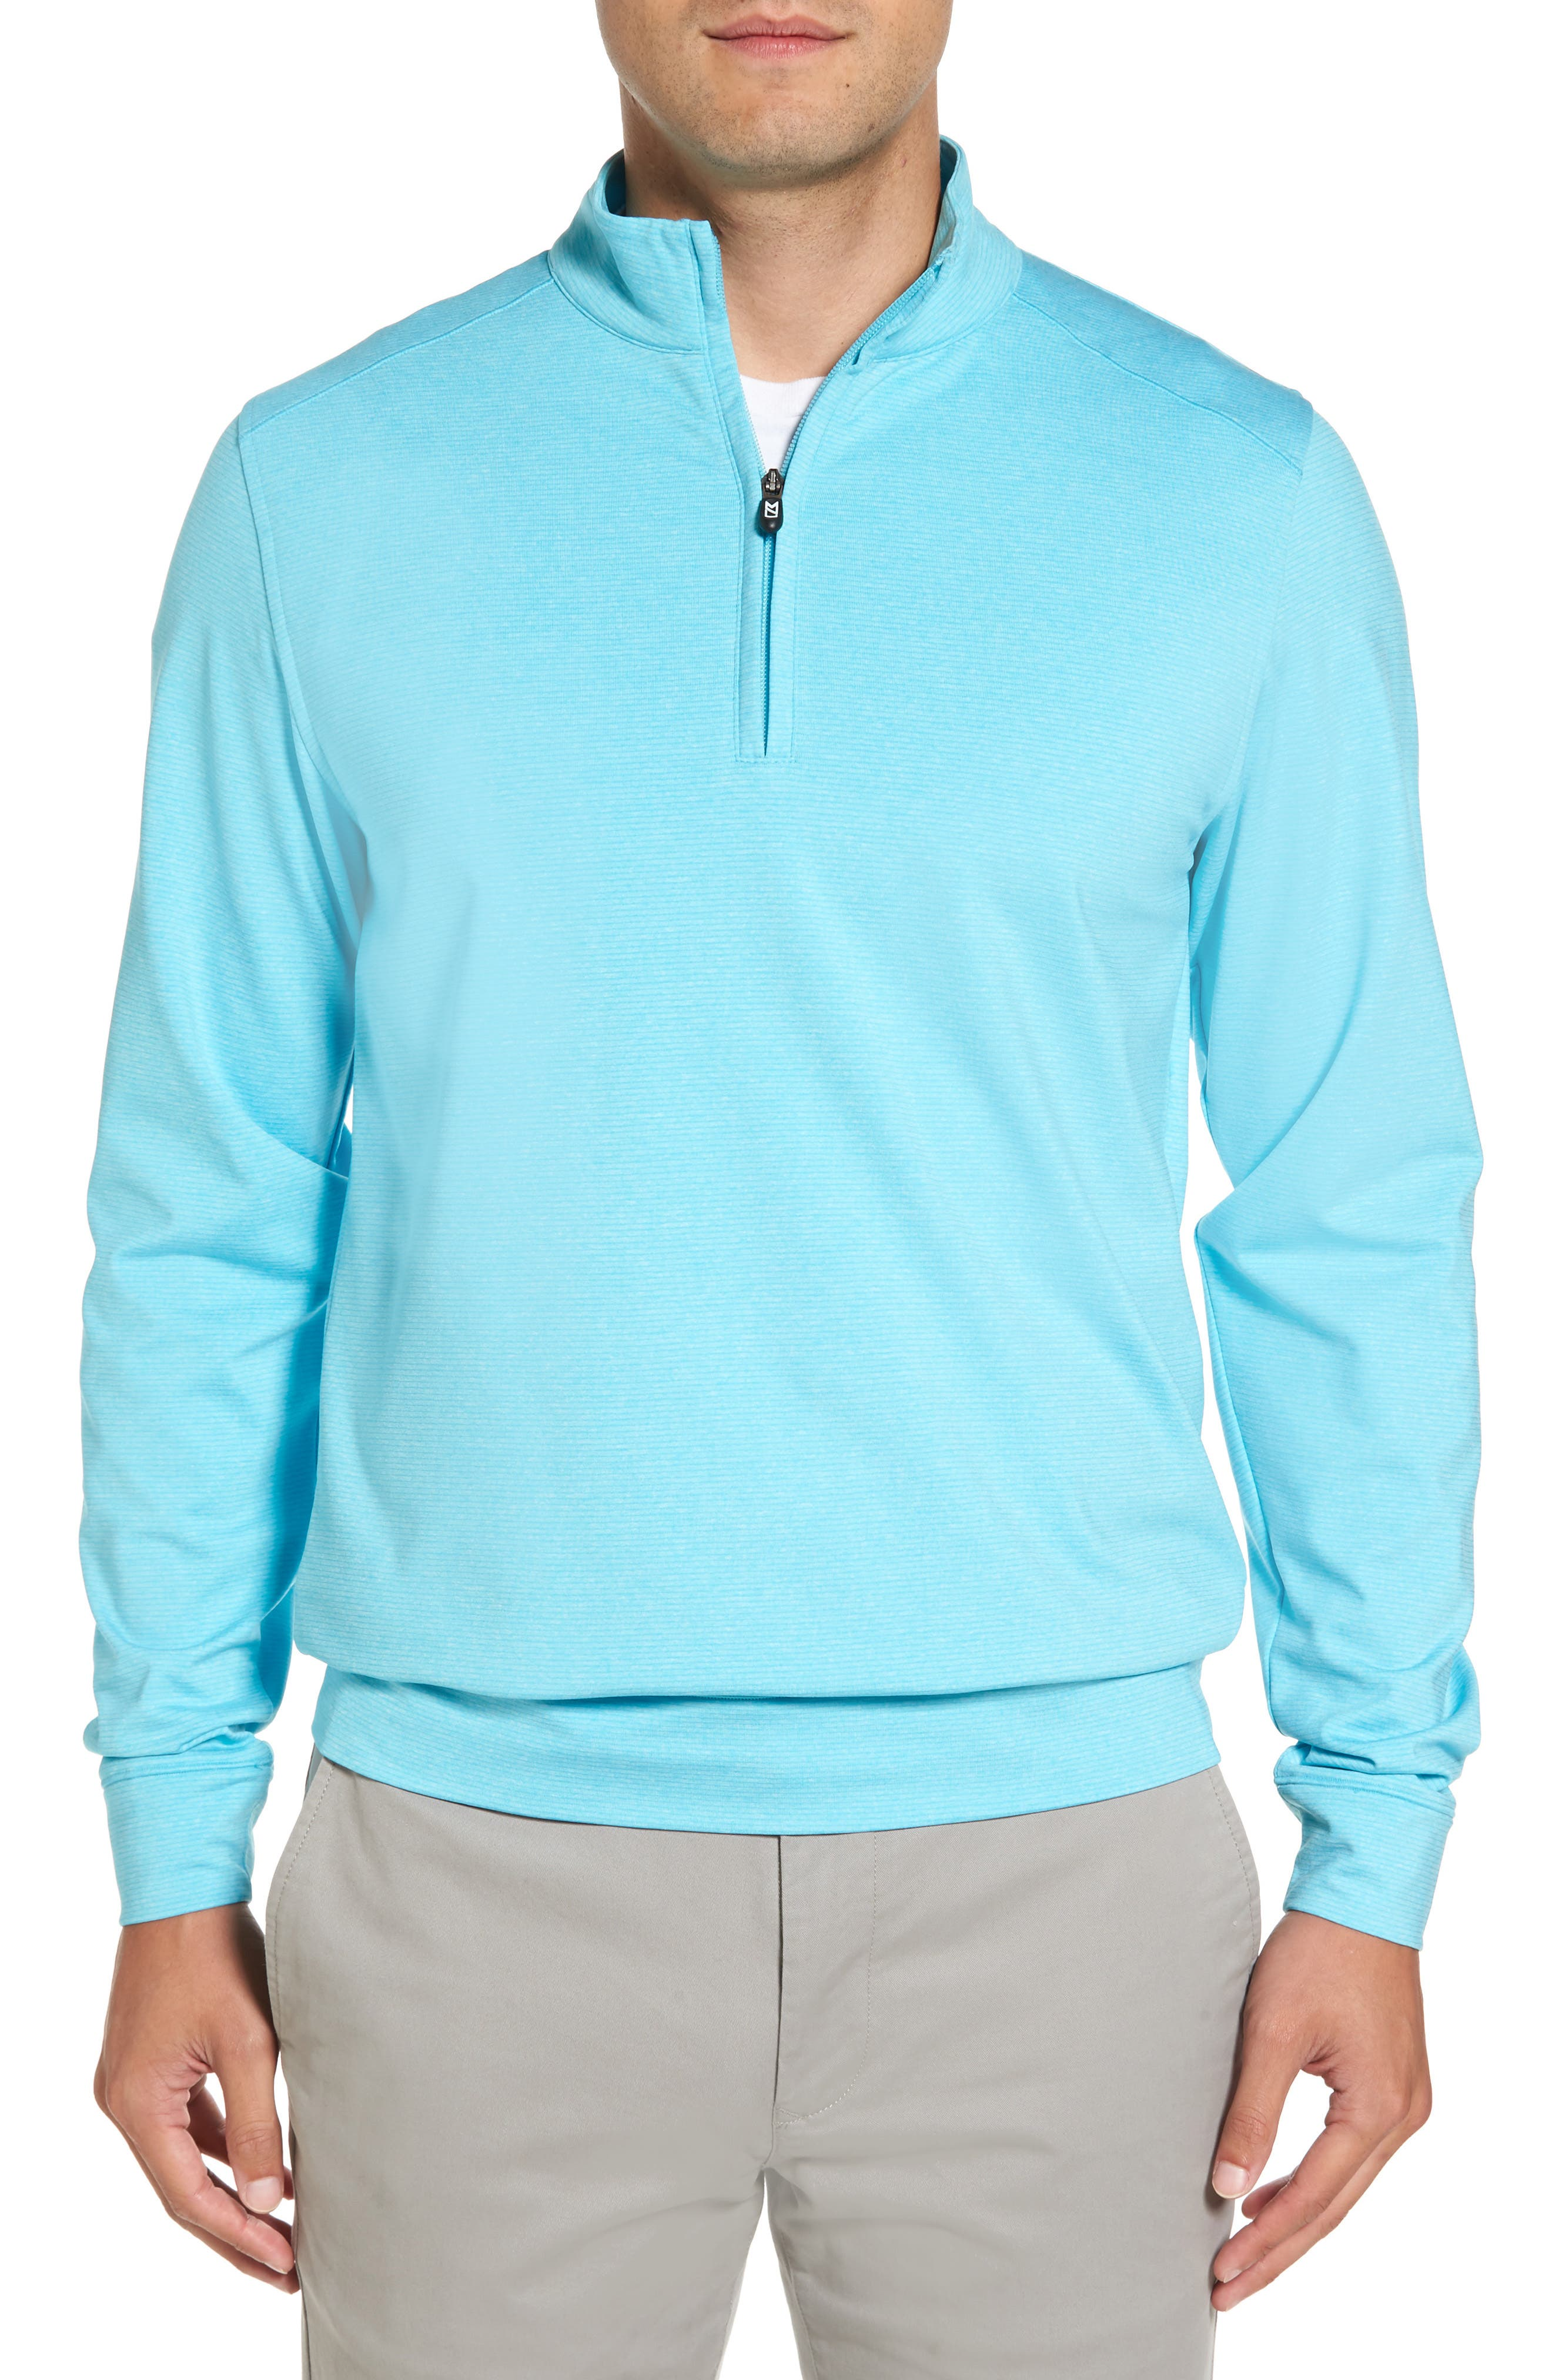 'Shoreline' Quarter Zip Pullover,                             Main thumbnail 1, color,                             ARUBA HEATHER